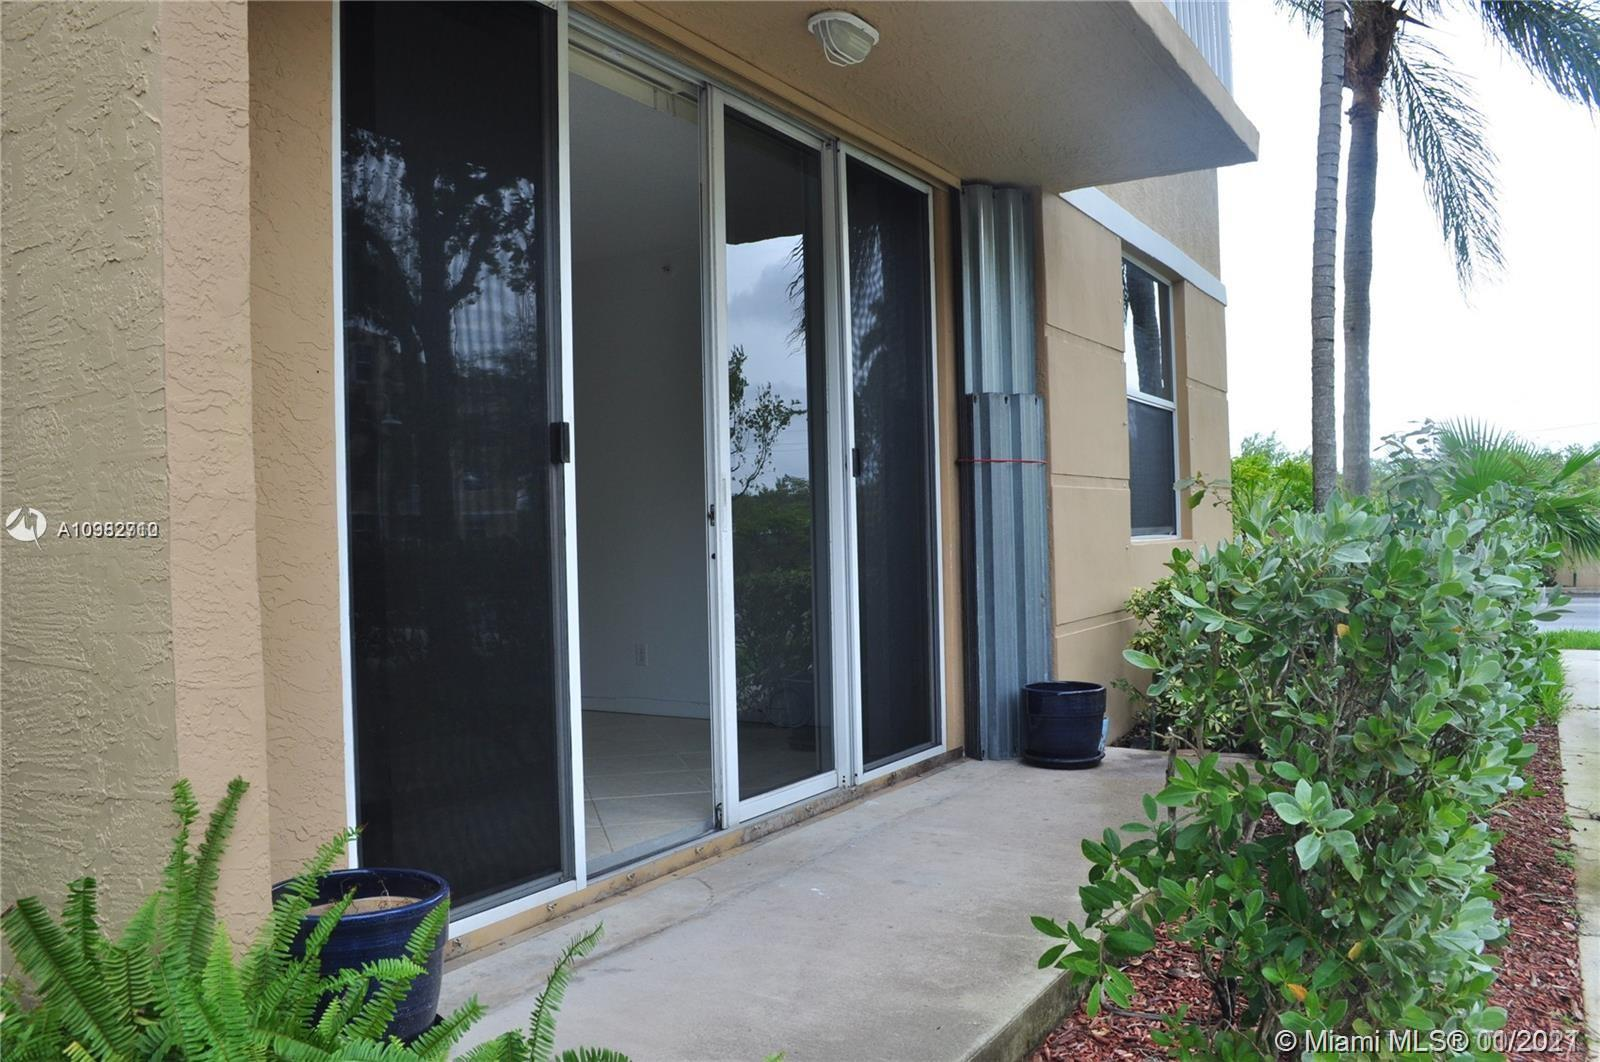 649 E Sheridan St # 111, Dania Beach, Florida 33004, 1 Bedroom Bedrooms, ,1 BathroomBathrooms,Residential Lease,For Rent,649 E Sheridan St # 111,A10982710